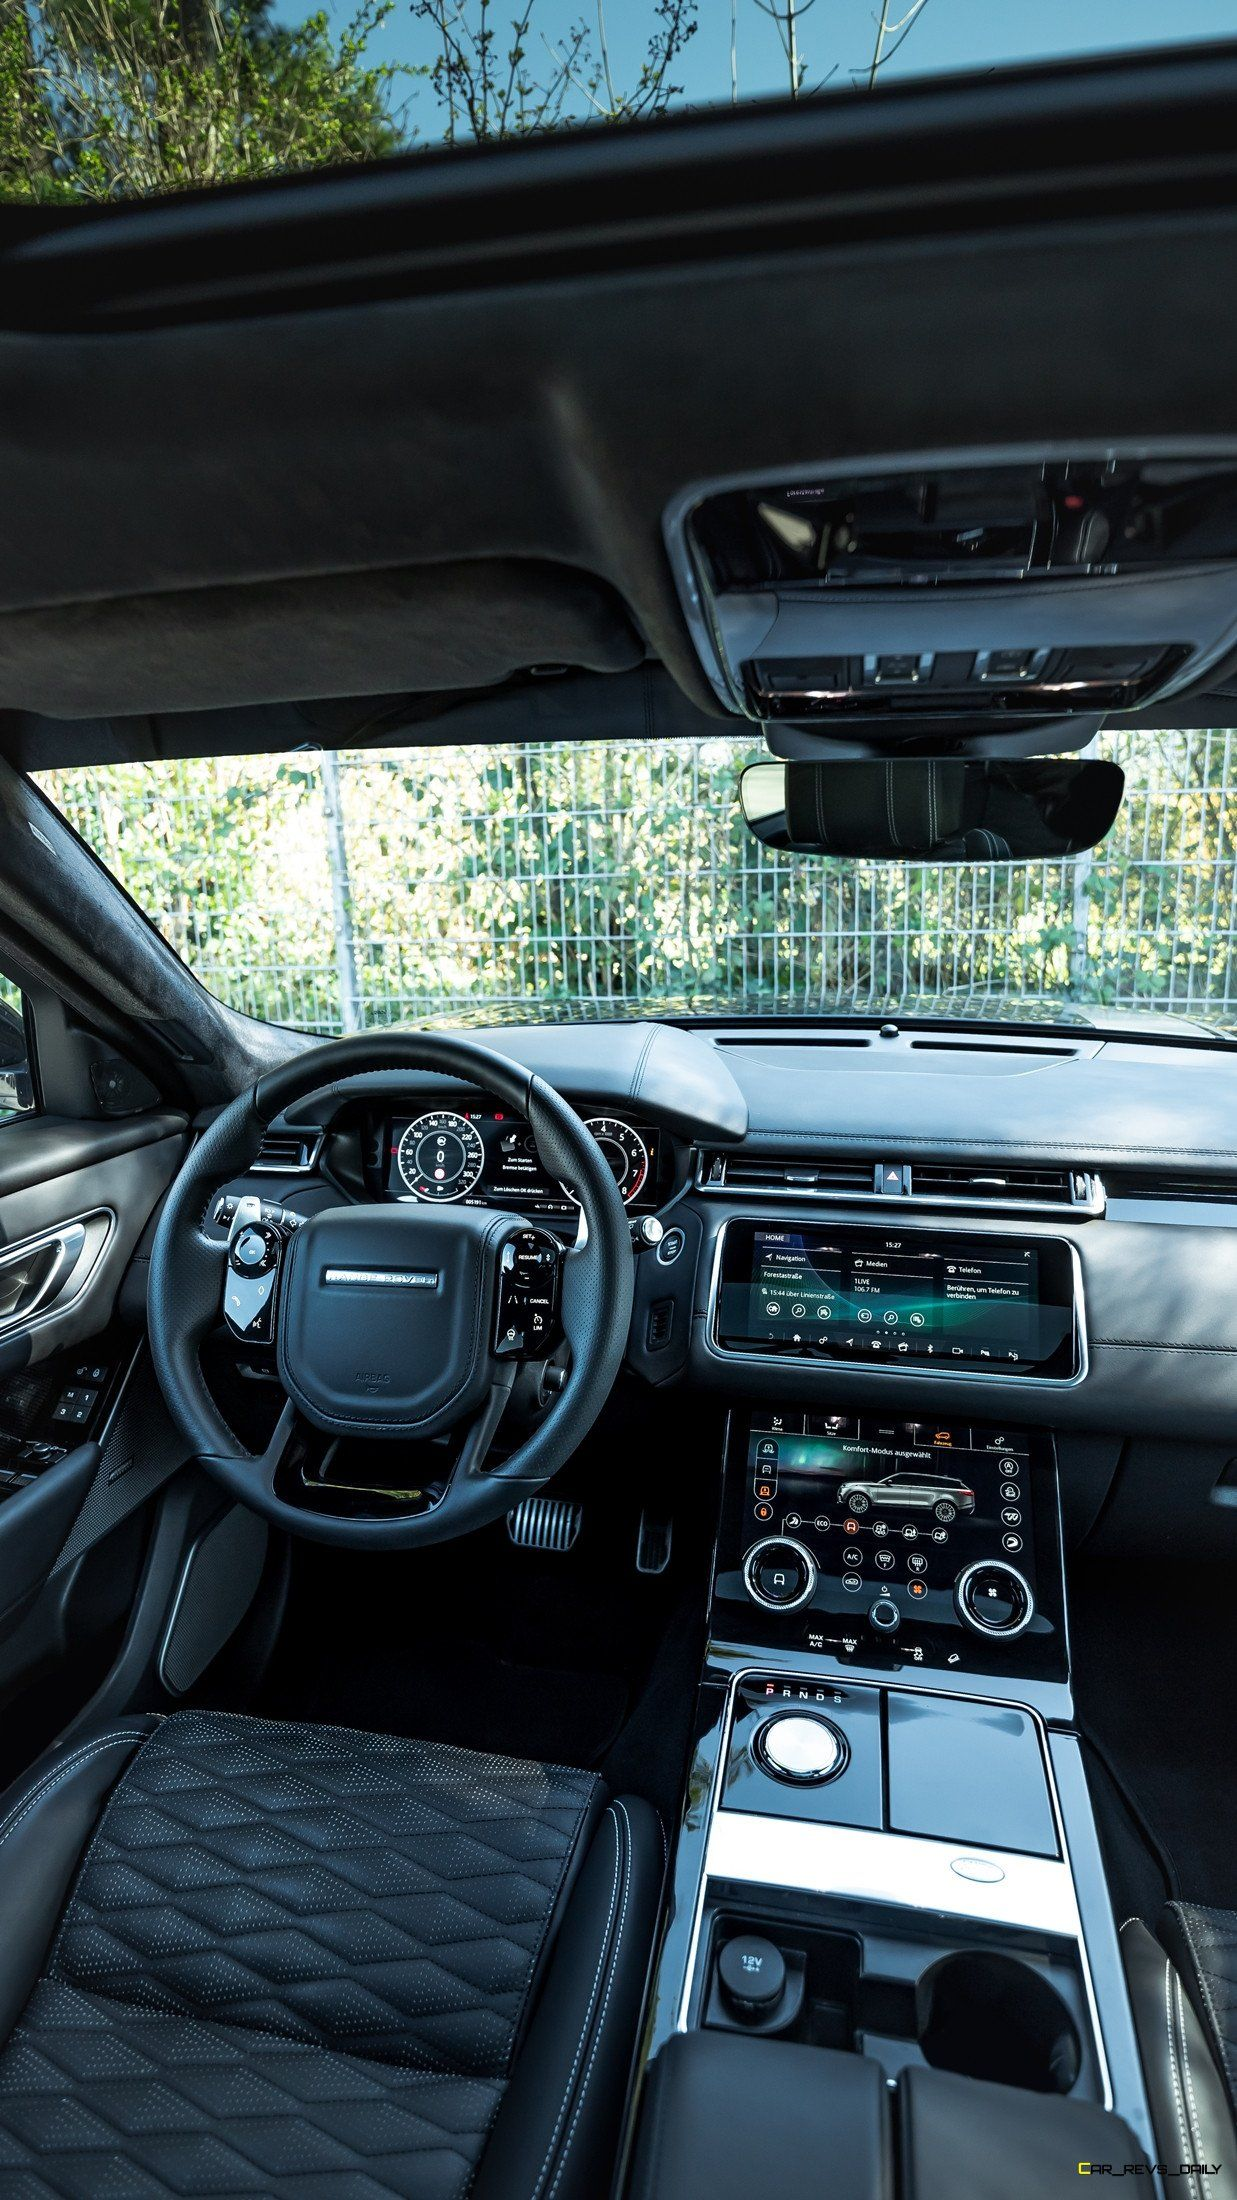 Manhart Velar SV600_17_Wallpaper in 2020 Range rover